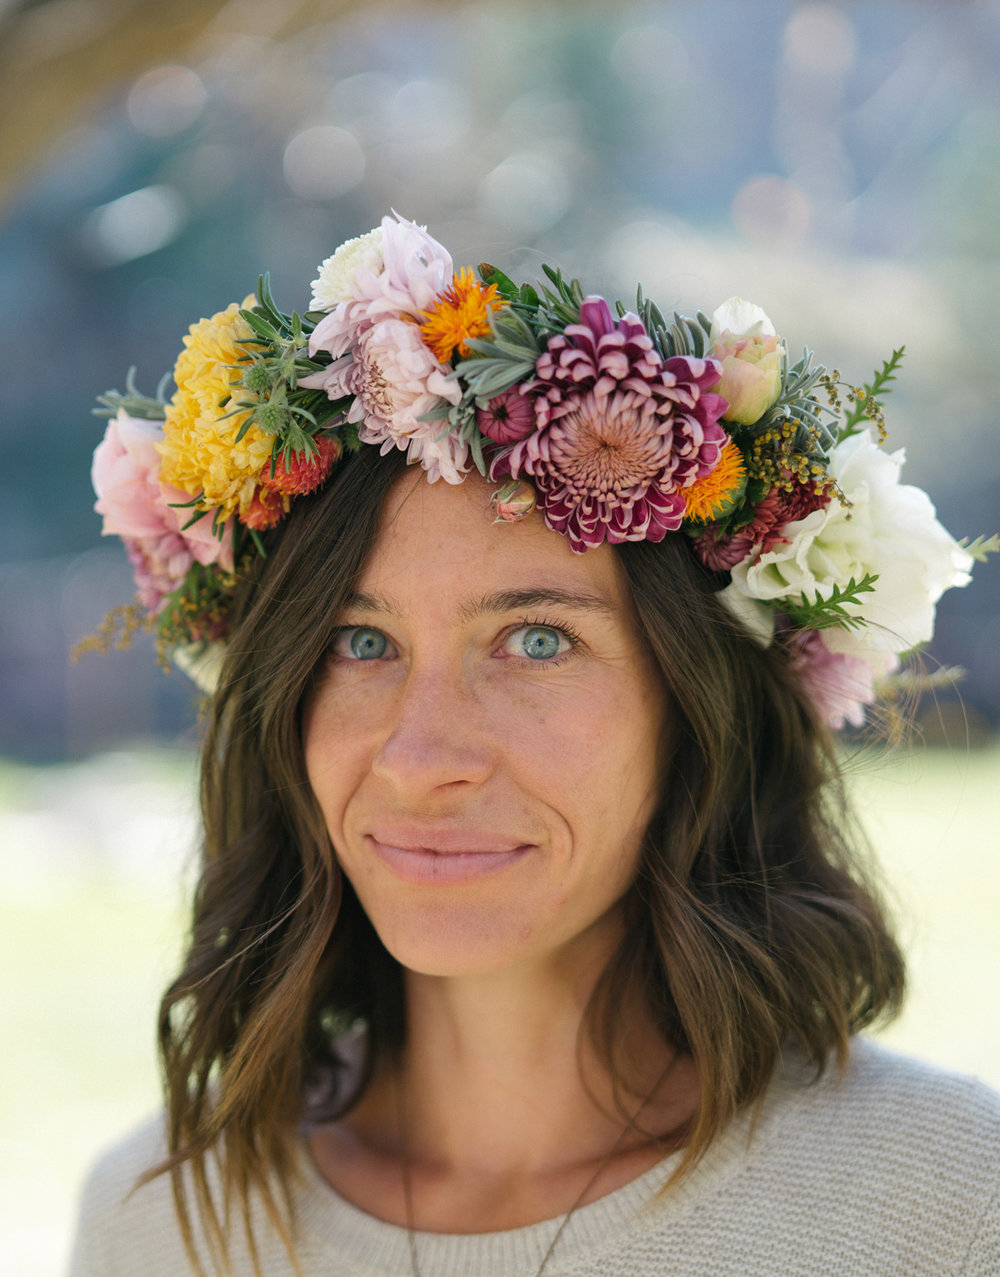 A really fun flower crown I got to make in October with all those mums! Photo by Nelson Esseveld.